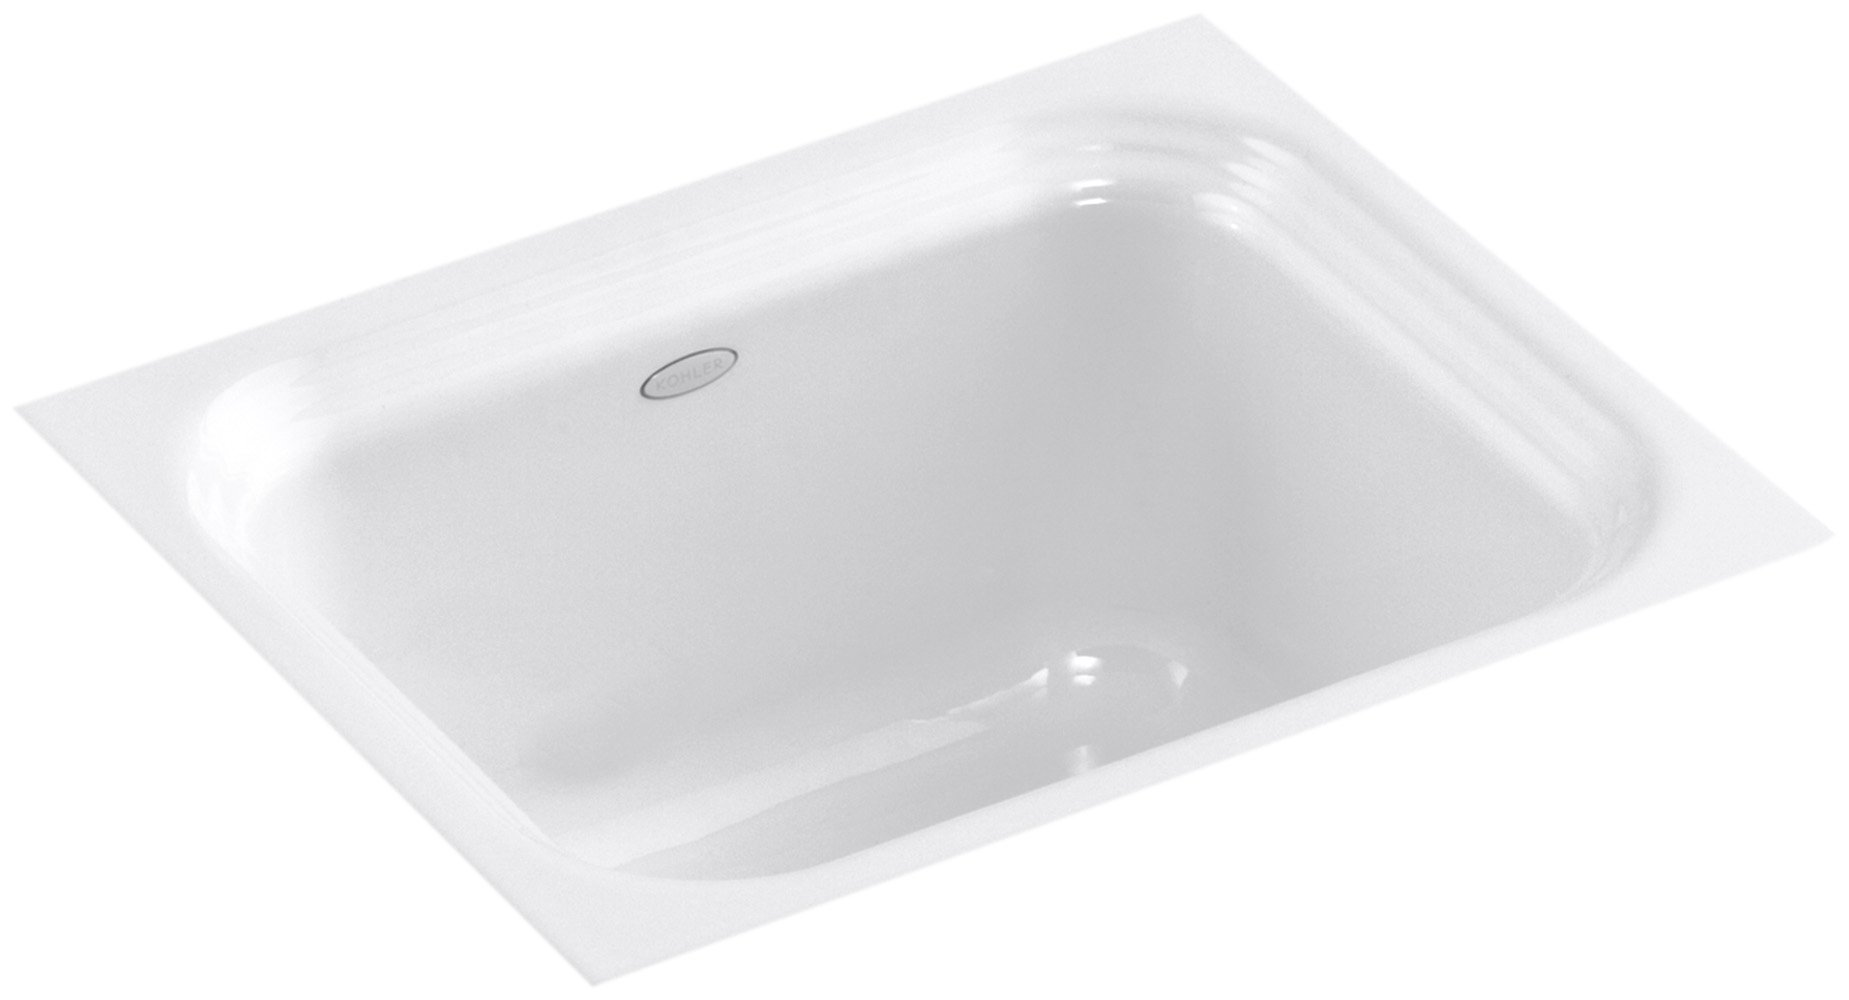 KOHLER K-6589-U-0 Northland Undercounter Entertainment Sink, White by Kohler